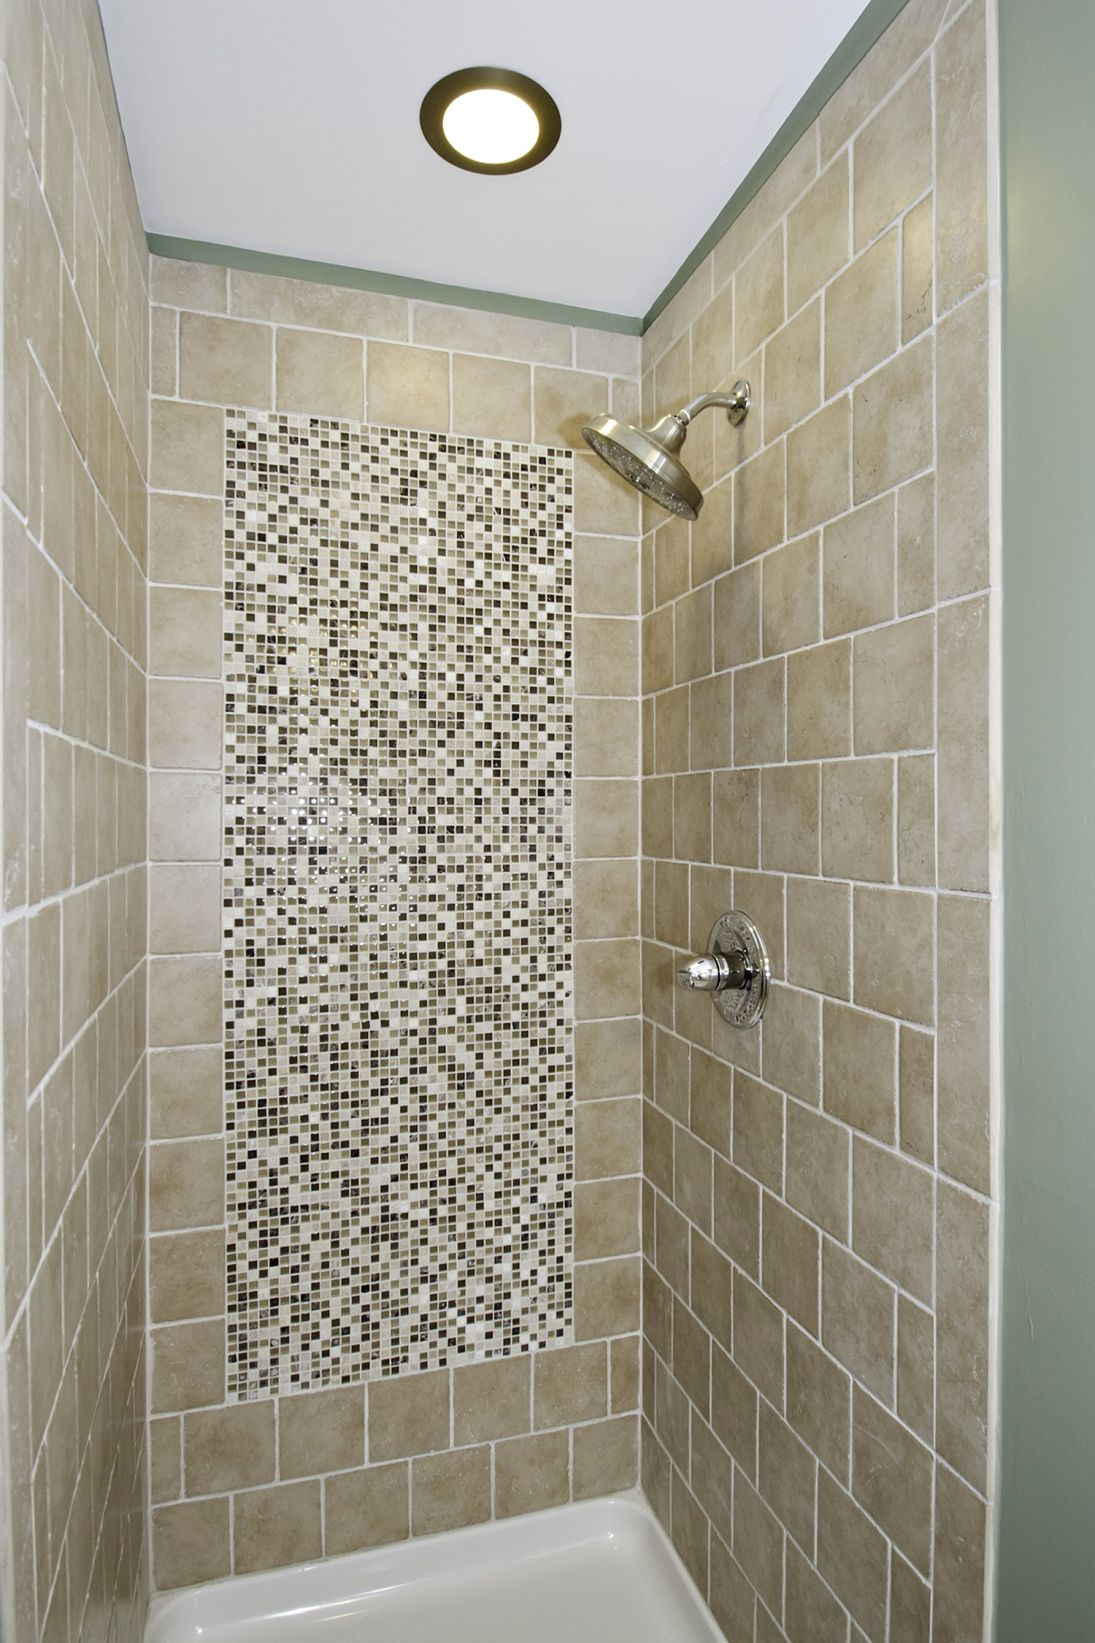 Bathroom Tiles Ideas Philippines Simple Brown Bathroom Tile Bathroom Bathroom Tile Designs Shower Tile